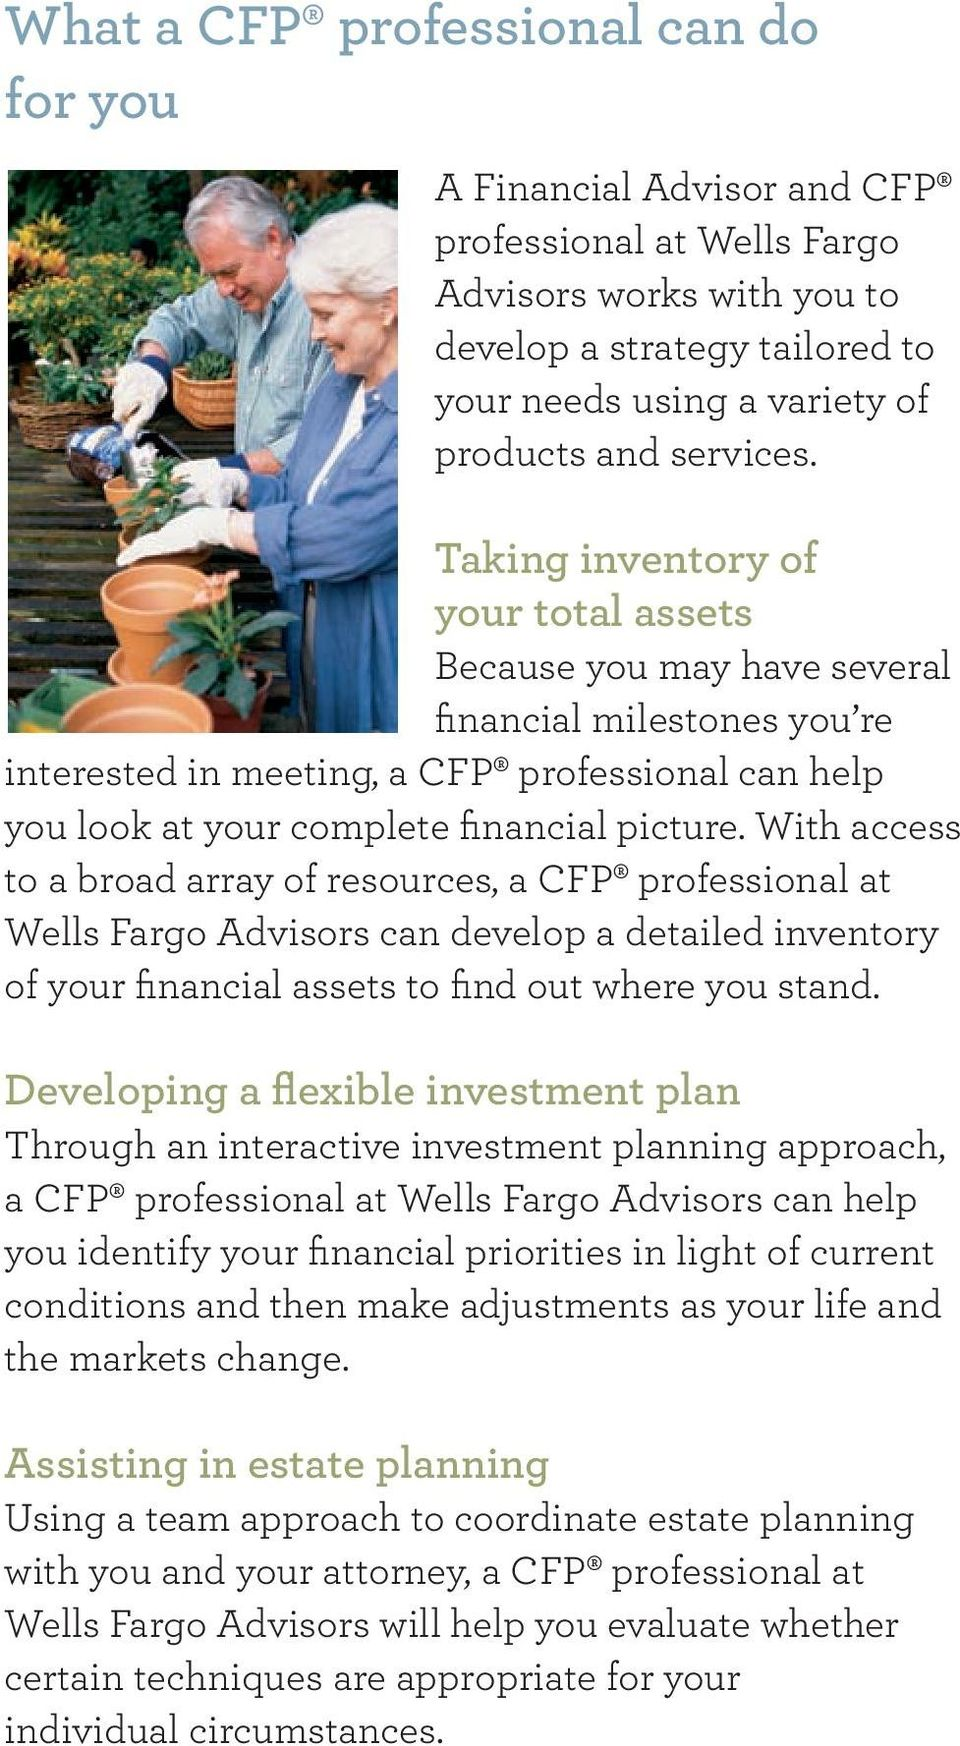 With access to a broad array of resources, a CFP professional at Wells Fargo Advisors can develop a detailed inventory of your financial assets to find out where you stand.